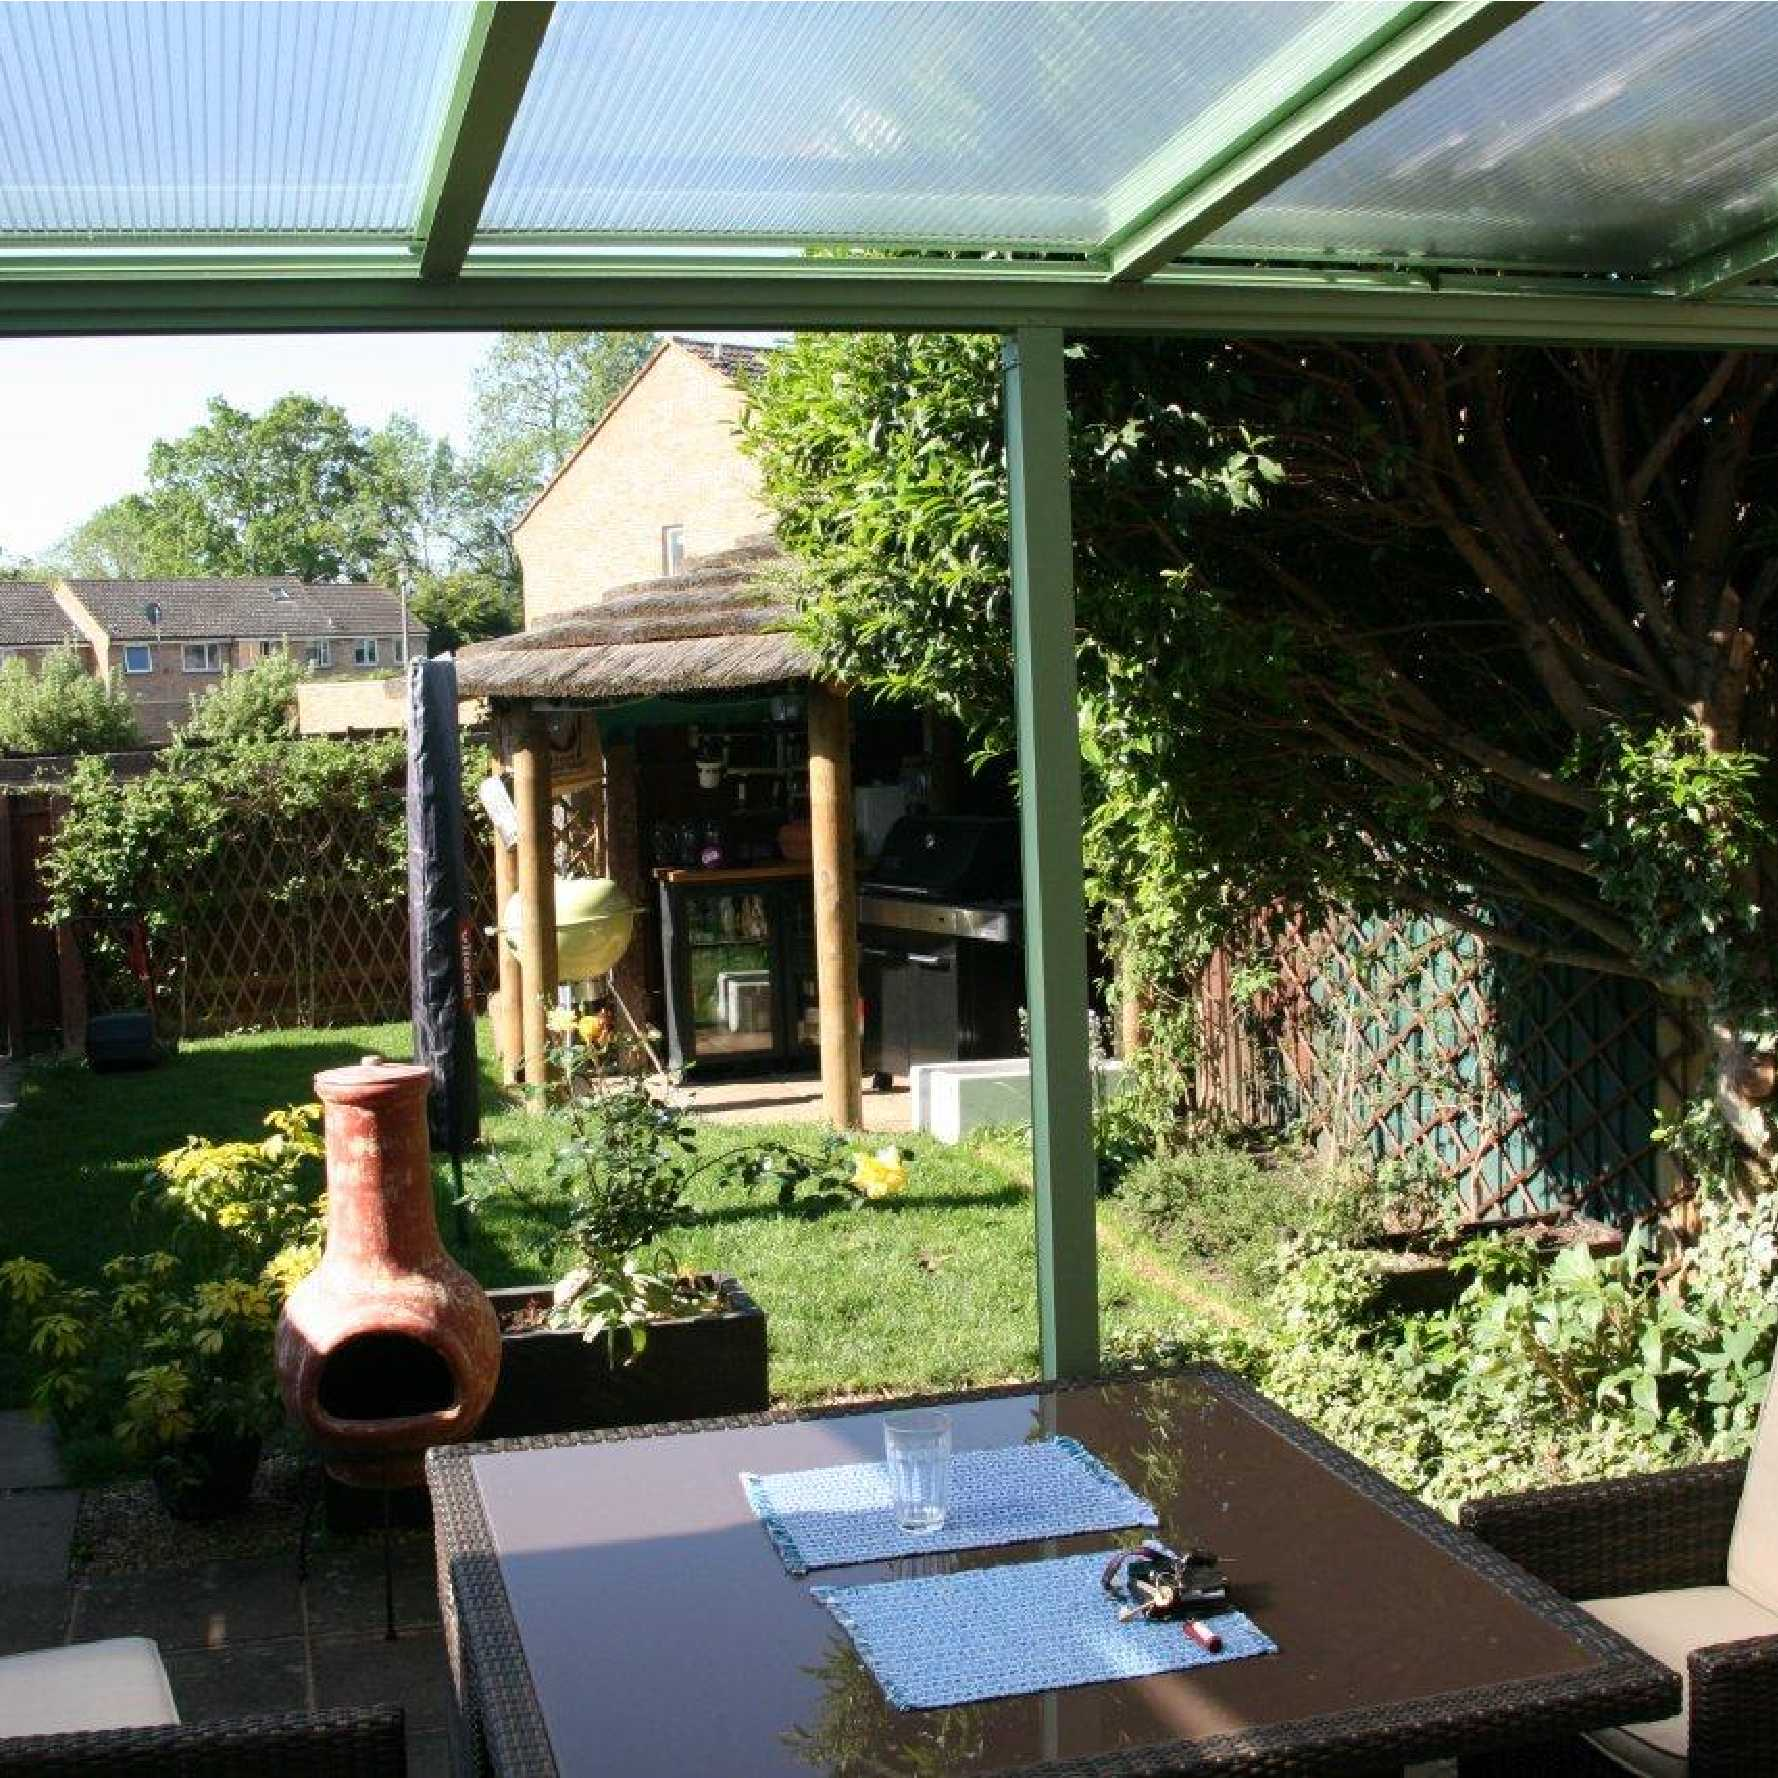 Affordable Omega Smart Lean-To Canopy with 16mm Polycarbonate Glazing - 9.5m (W) x 1.5m (P), (5) Supporting Posts